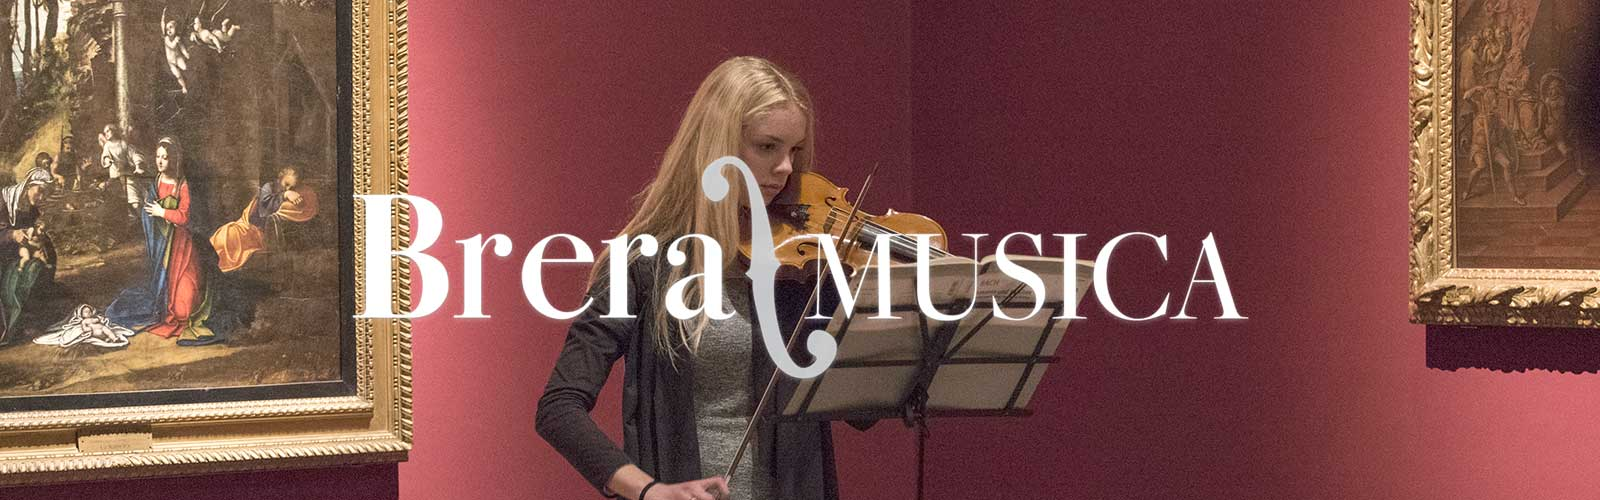 Brera/Music is back!